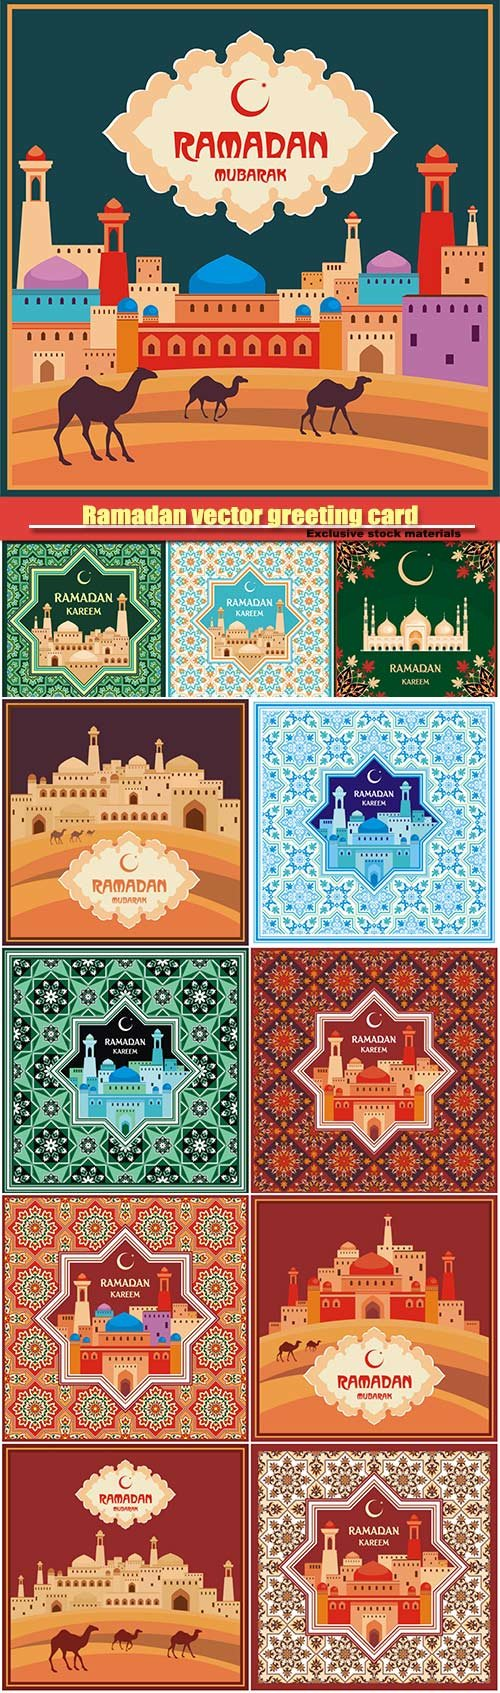 Ramadan vector greeting card